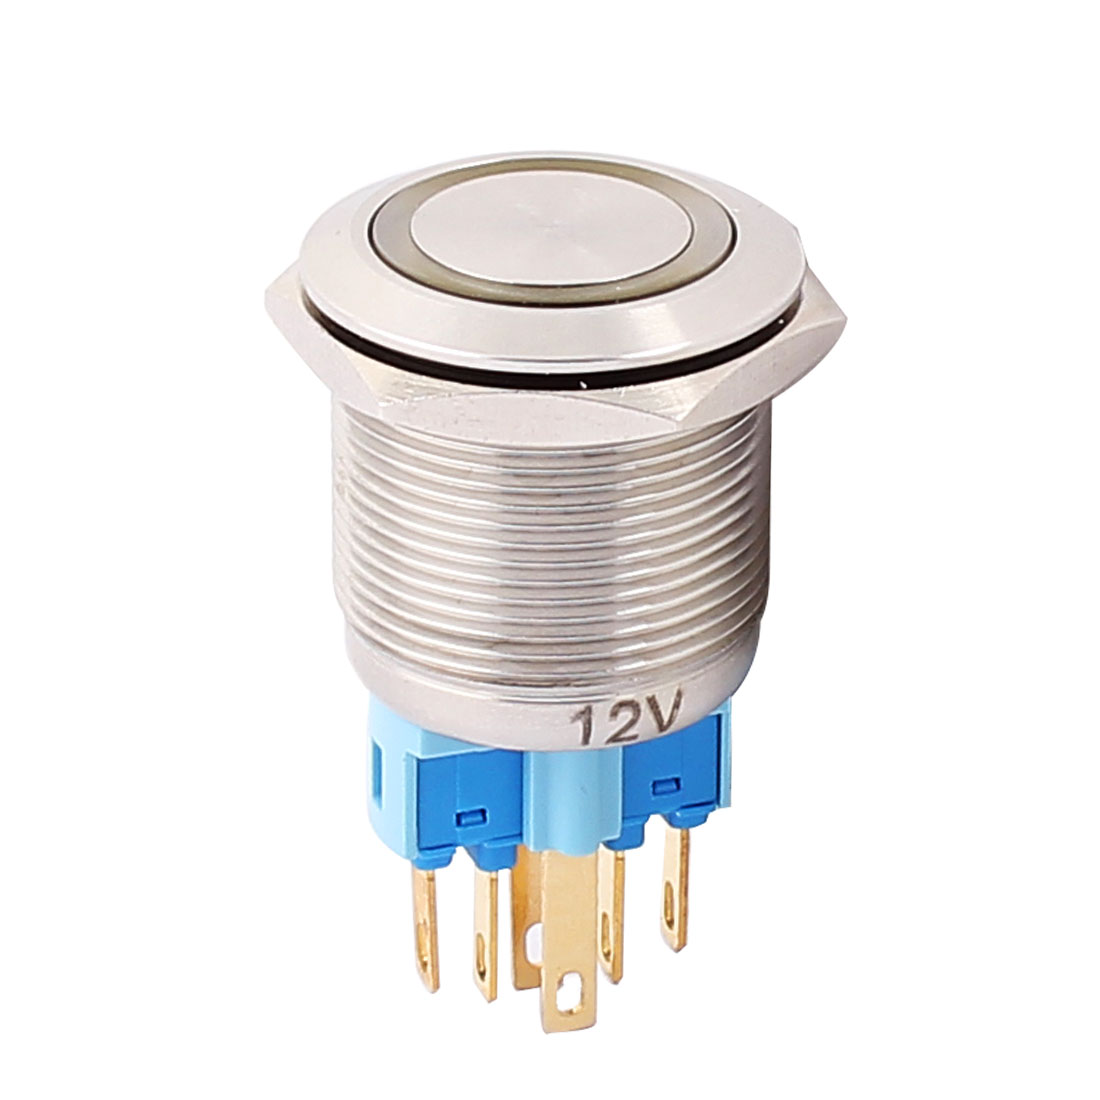 12V 22mm Thread Dia Yellow LED Angle Eyes Latching Metal Pushbutton Switch